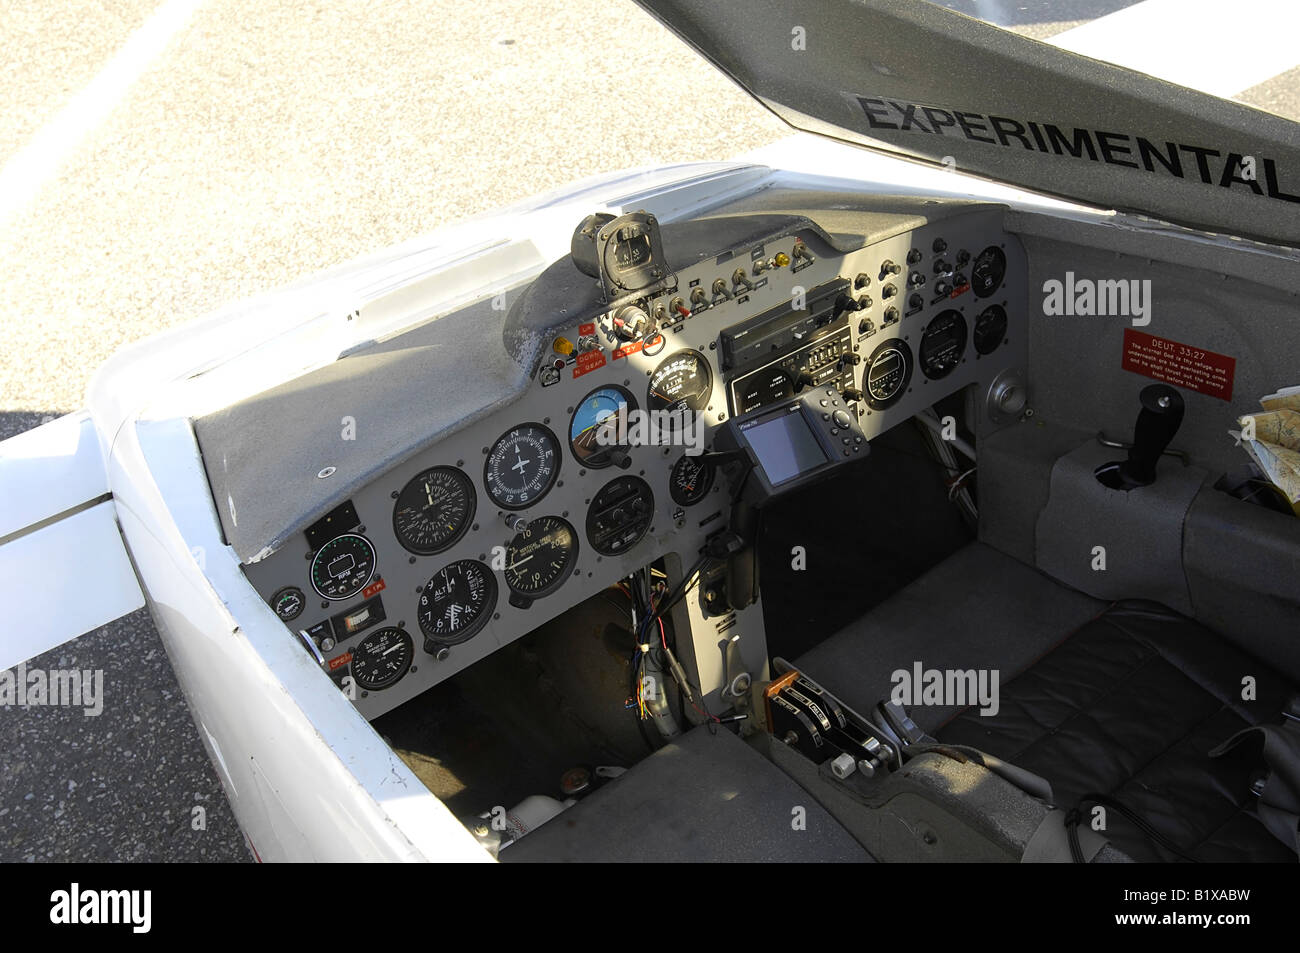 Interior cockpit of an experimental category aircraft commonly called a homebuilt aircraft. - Stock Image